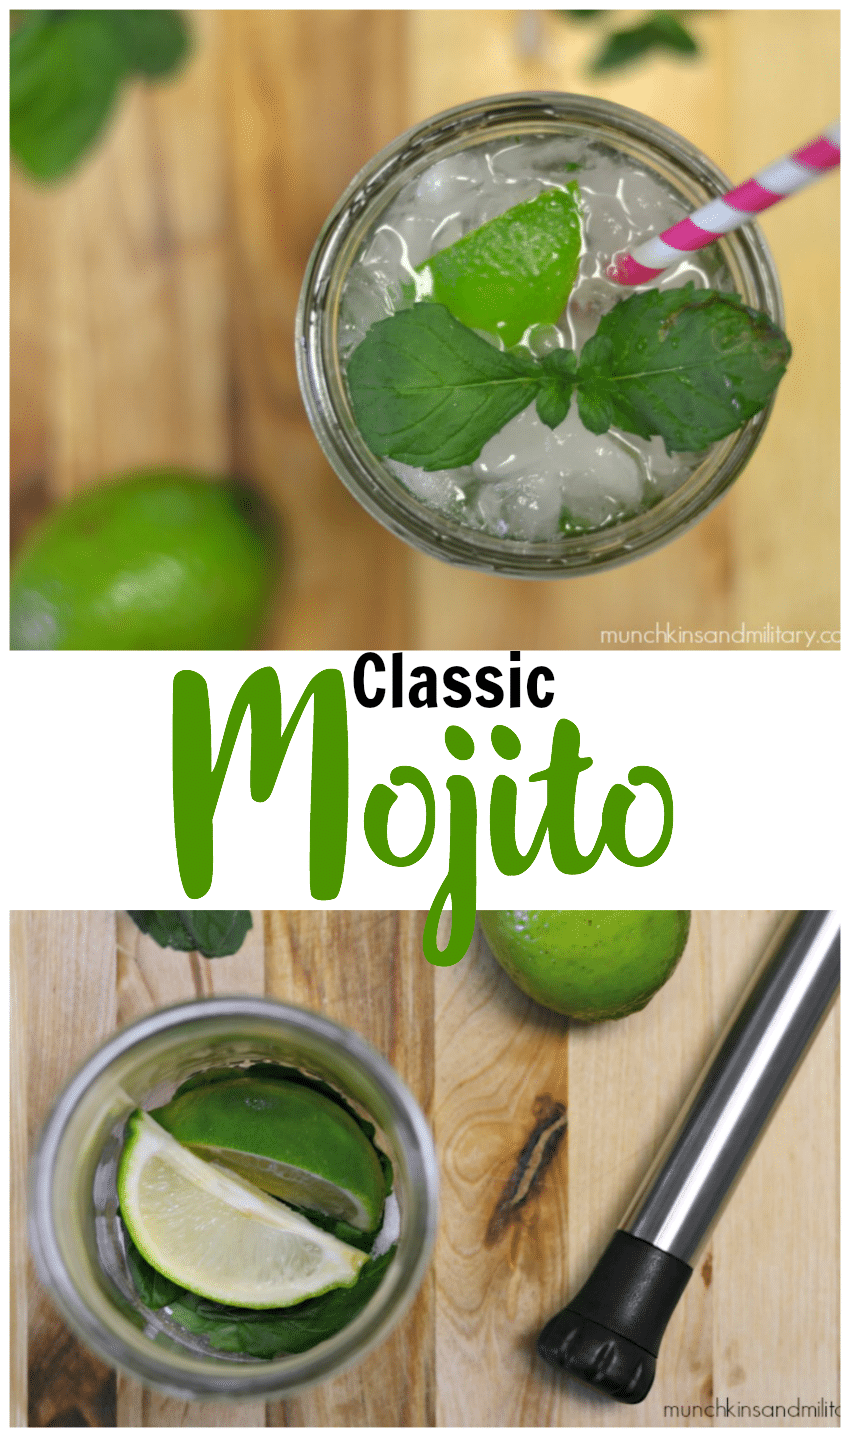 Sugar, mint, and lime muddled together then topped with rum and club soda create the perfect crisp and refreshing Mojito!